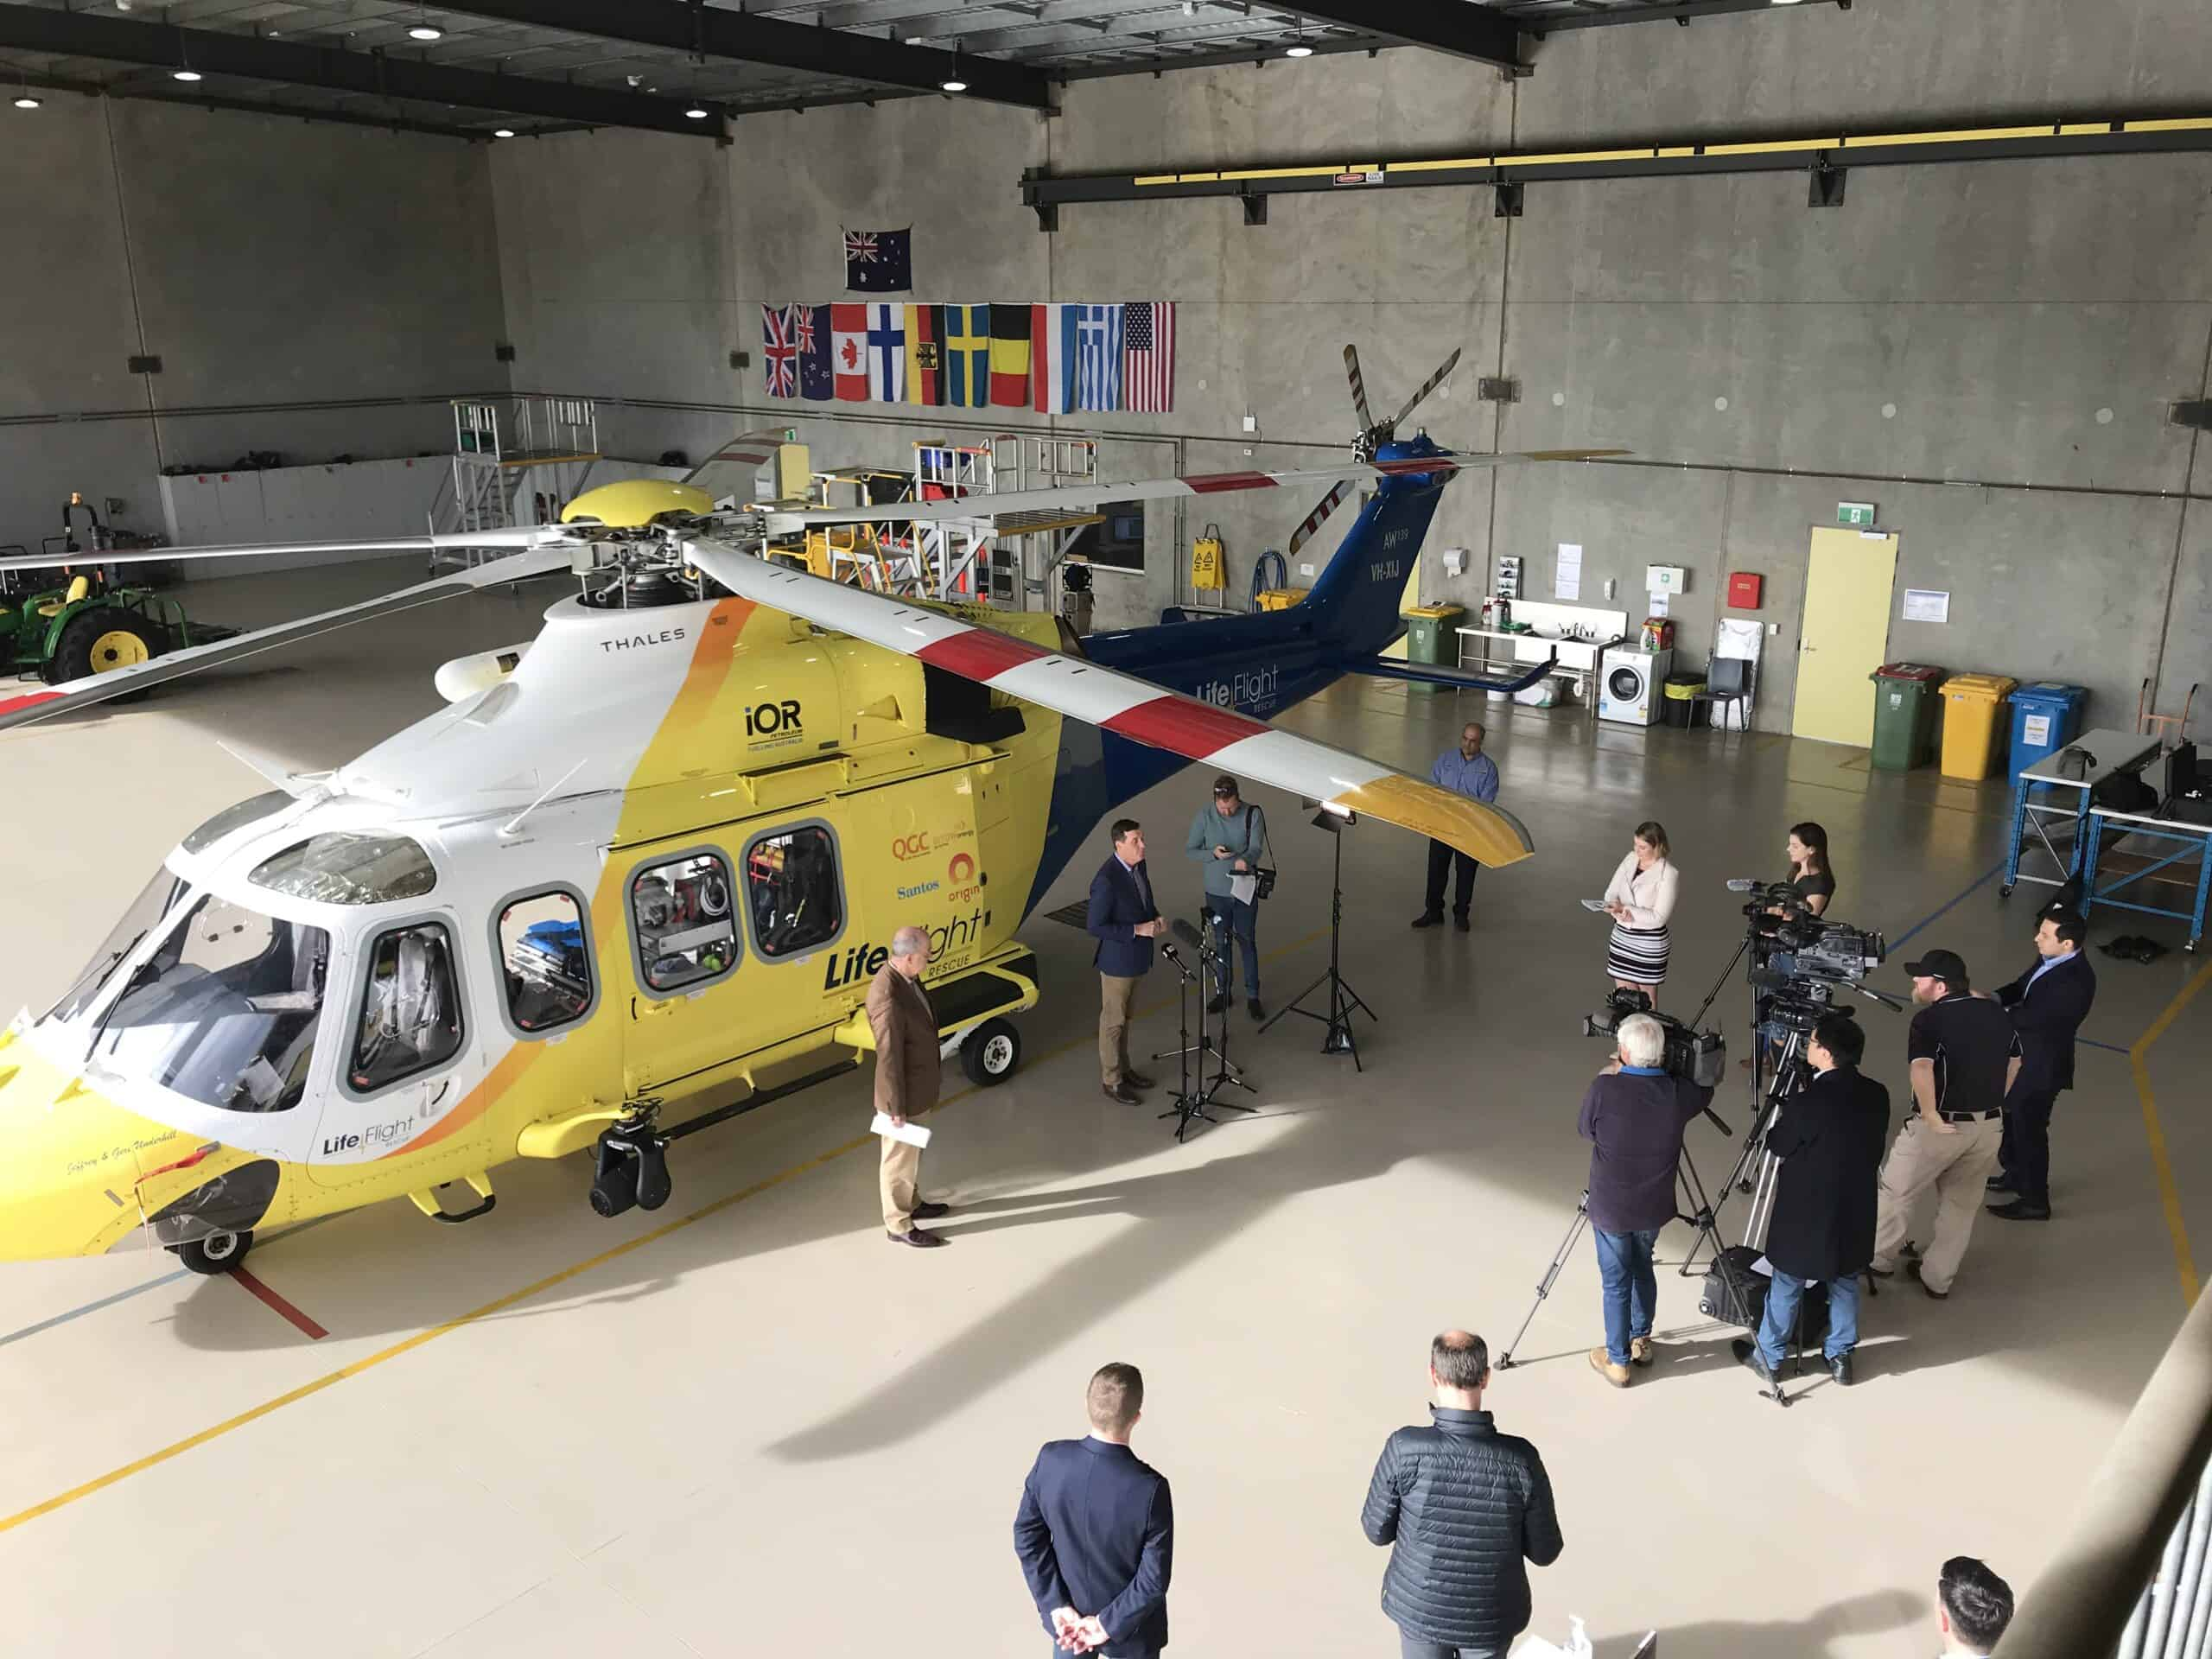 LifeFlight SGAS choppers soar into the future in the South West